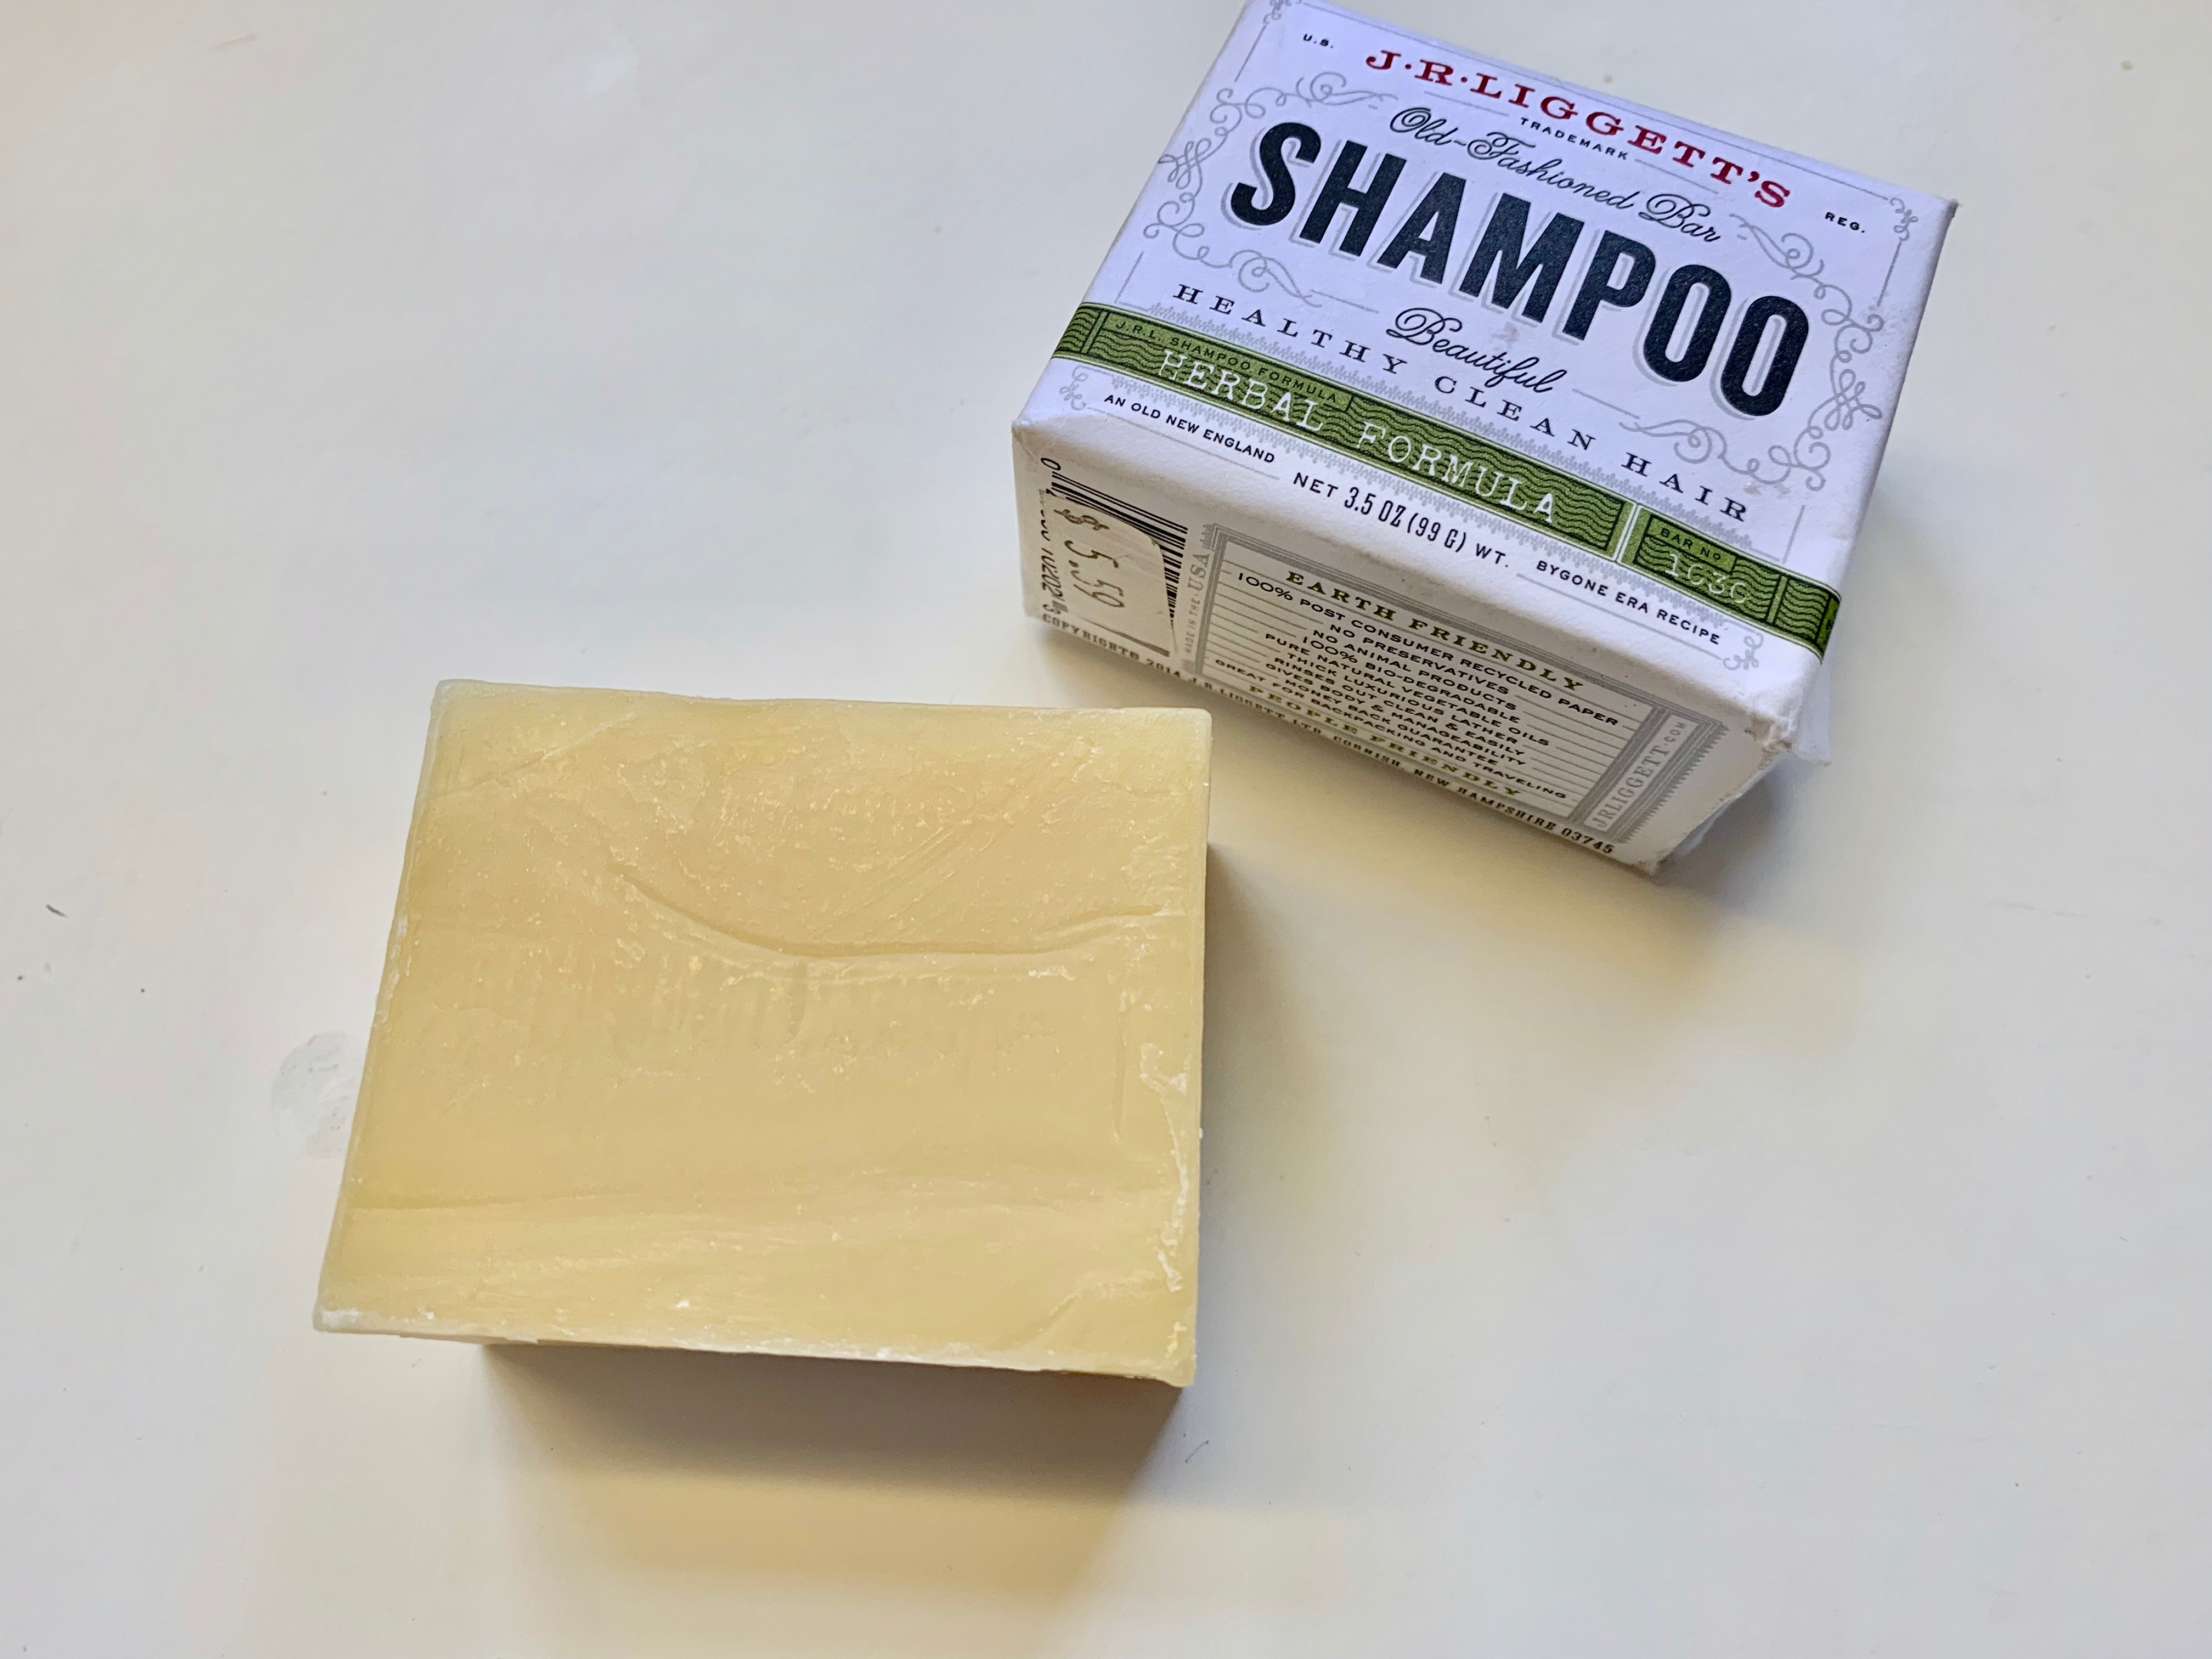 How to make liquid shampoo from shampoo bar - Our Gabled Home